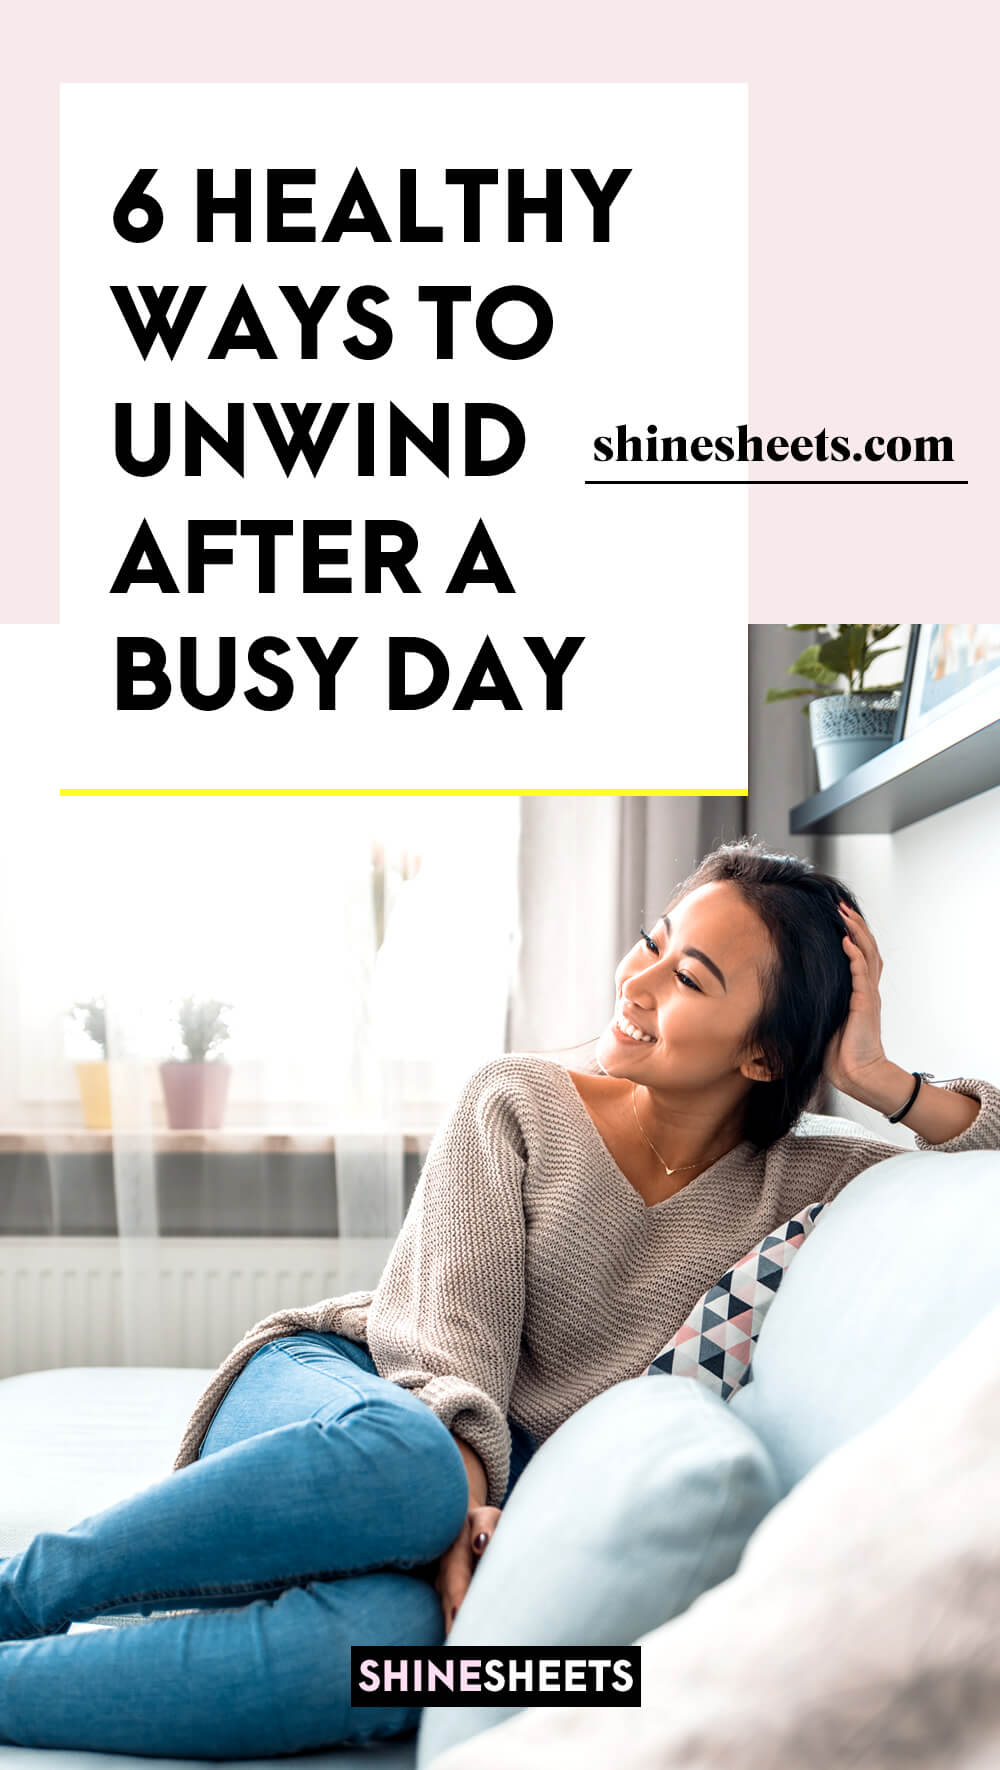 woman smiling to unwind after a busy day